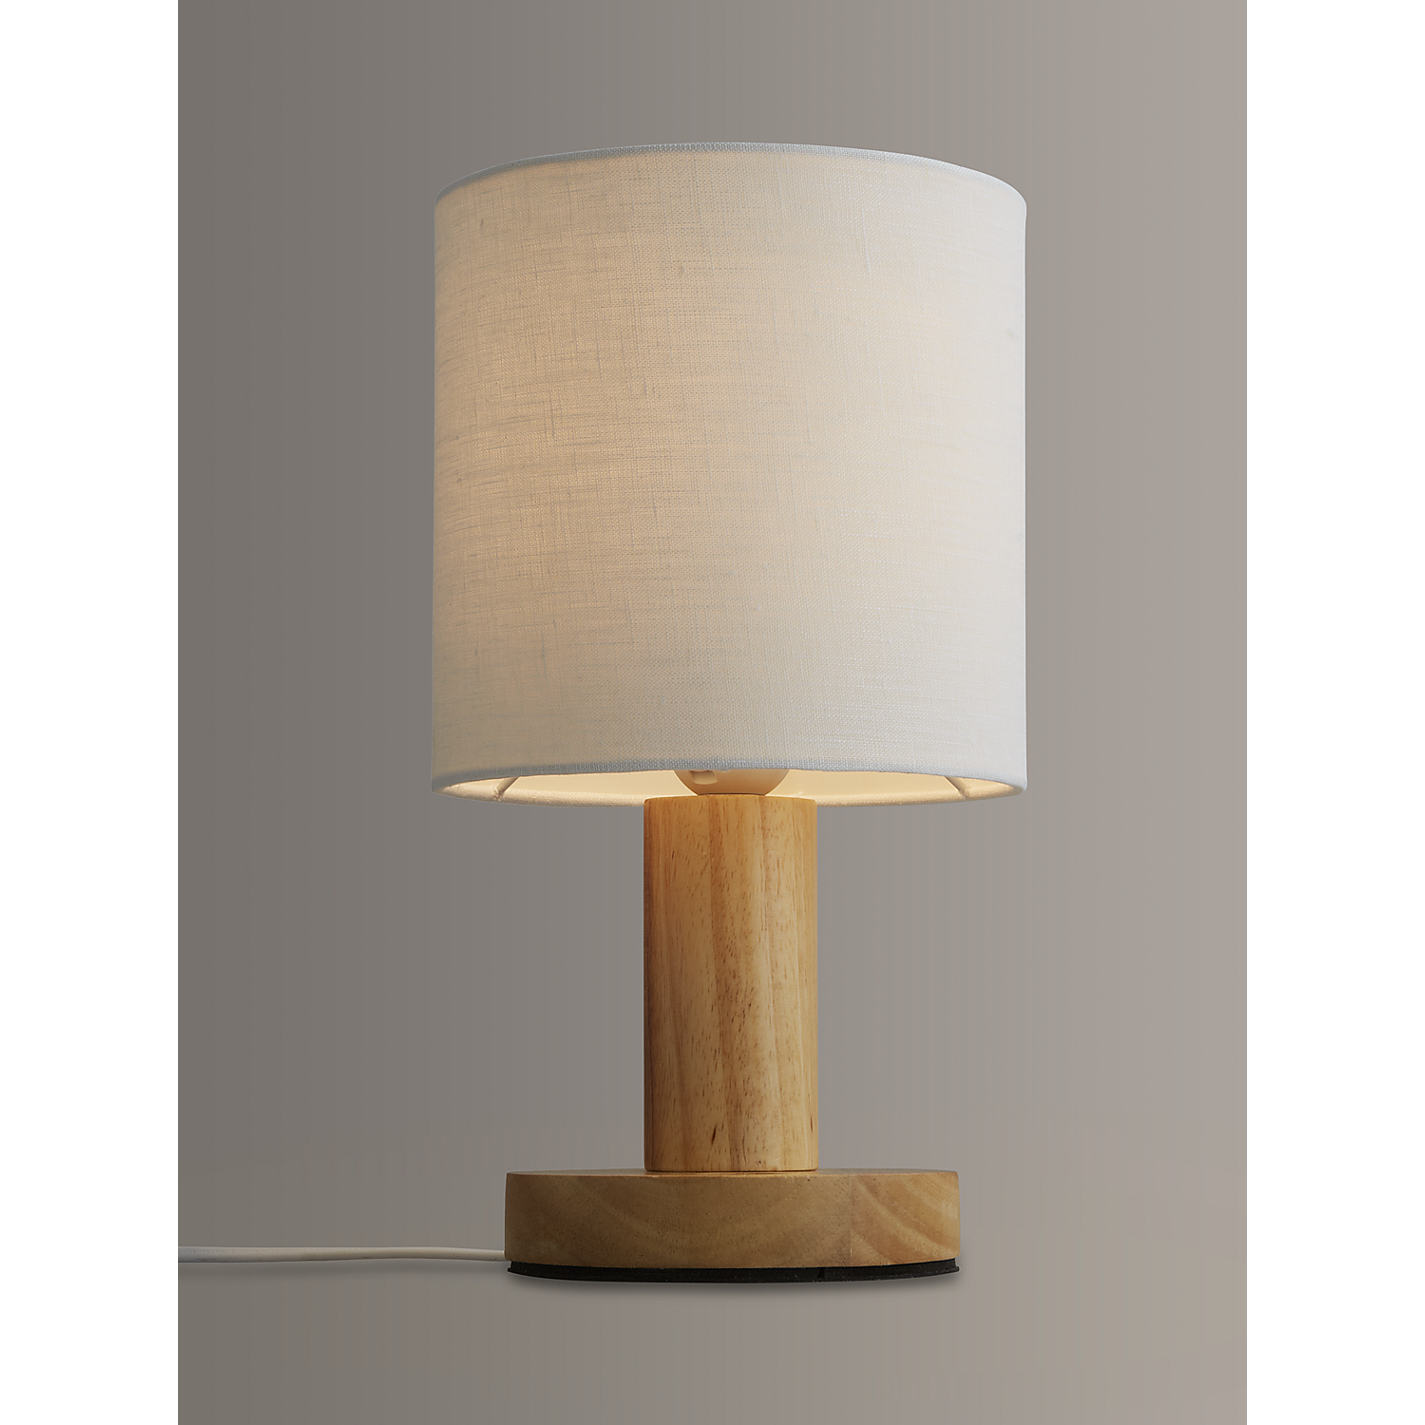 Buy john lewis slater wood touch table lamp john lewis buy john lewis slater wood touch table lamp online at johnlewis aloadofball Images